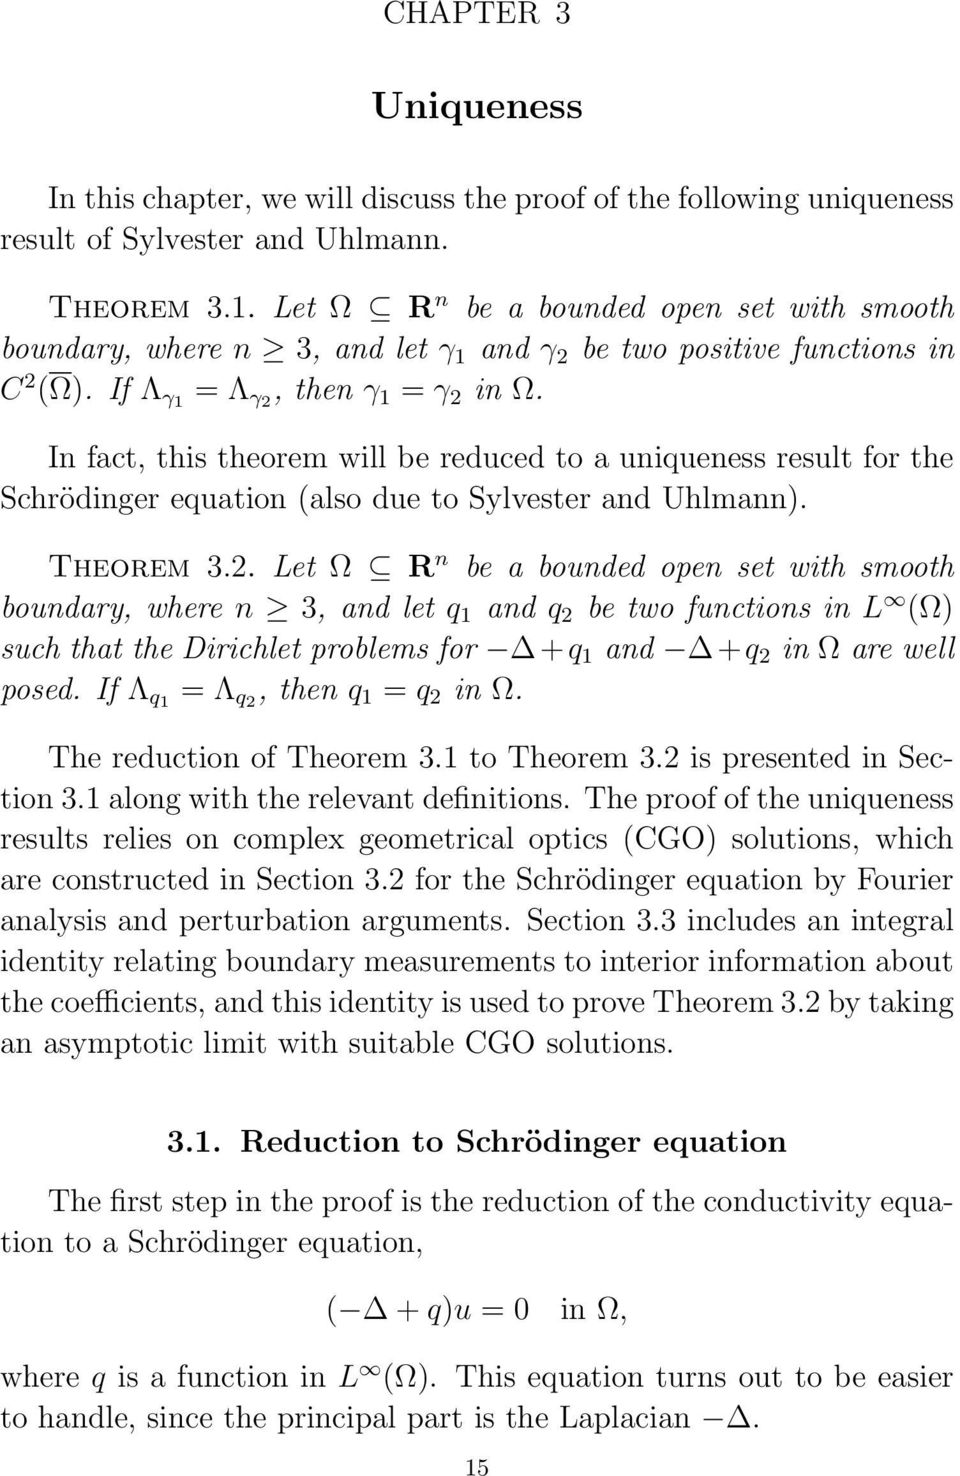 In fact, this theorem will be reduced to a uniqueness result for the Schrödinger equation (also due to Sylvester and Uhlmann). Theorem 3.2.